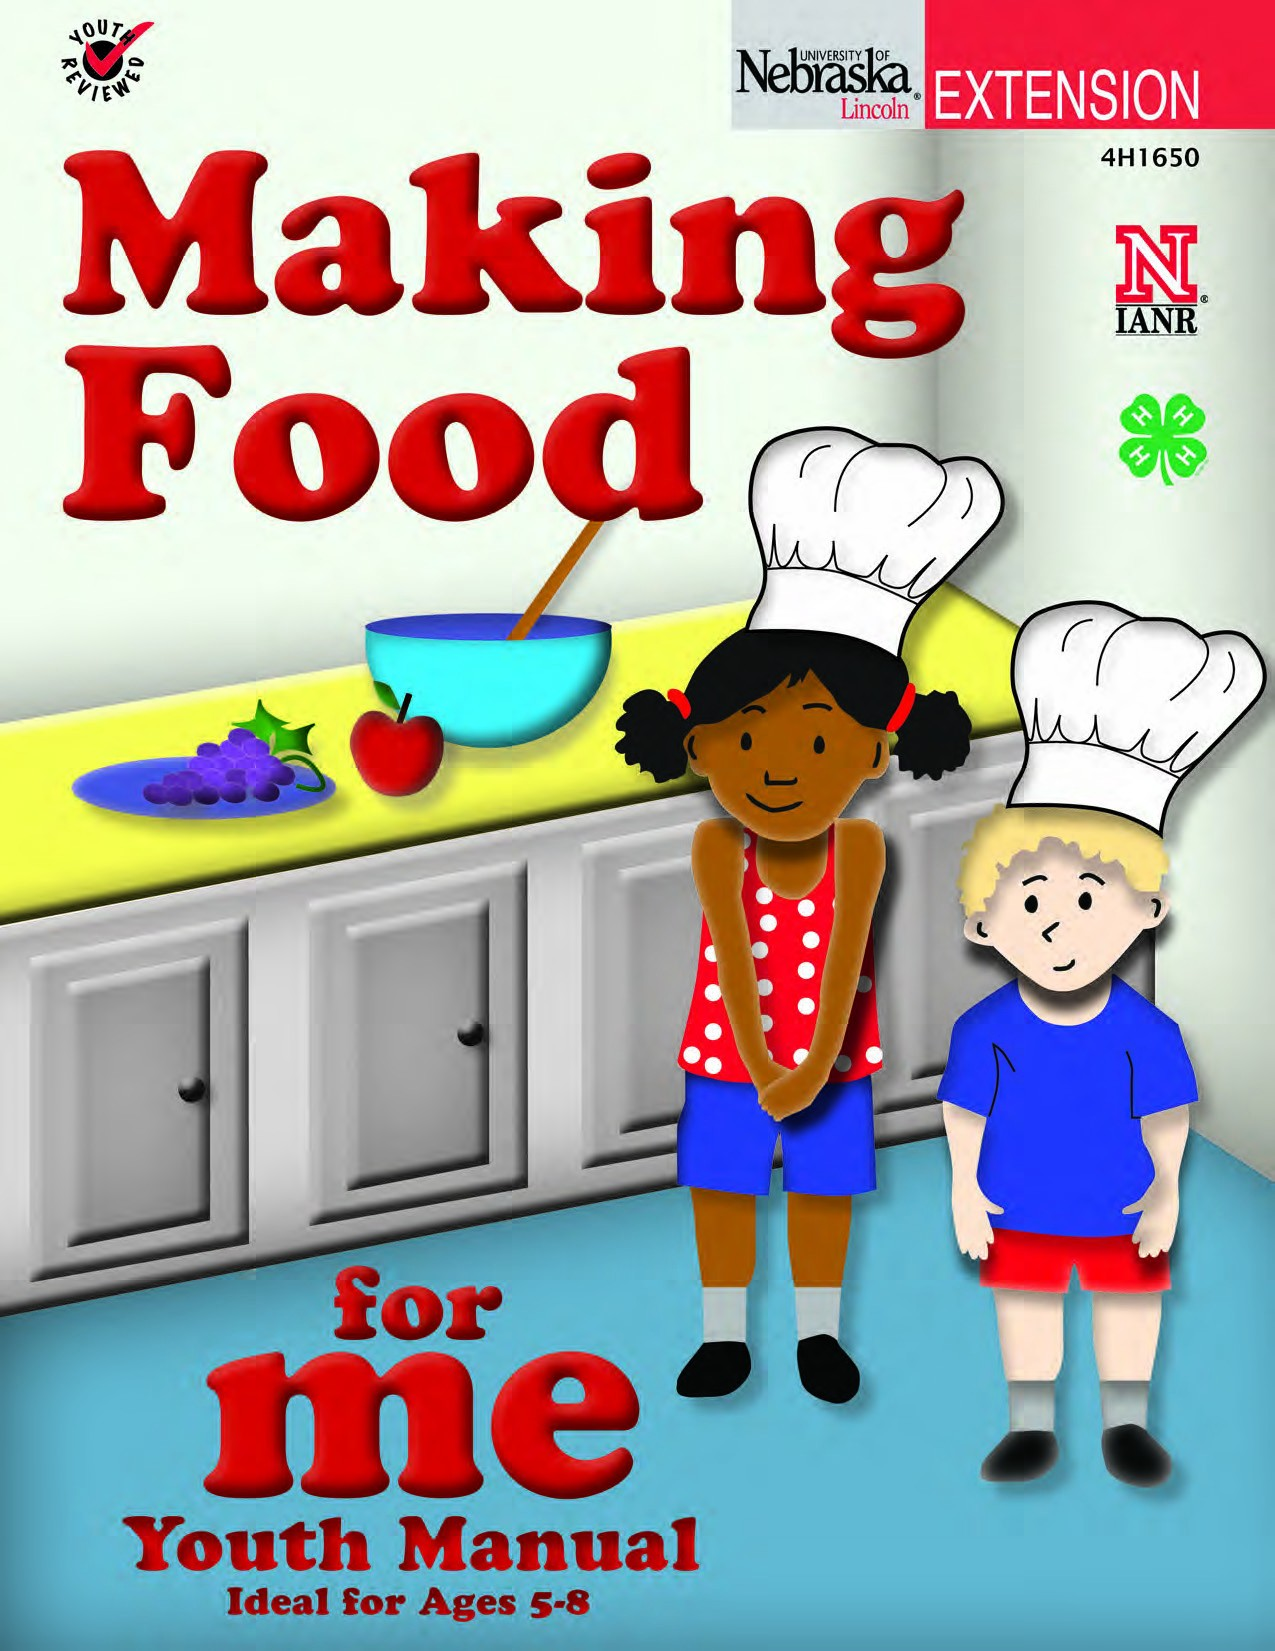 Making Food for Me - Youth Manual